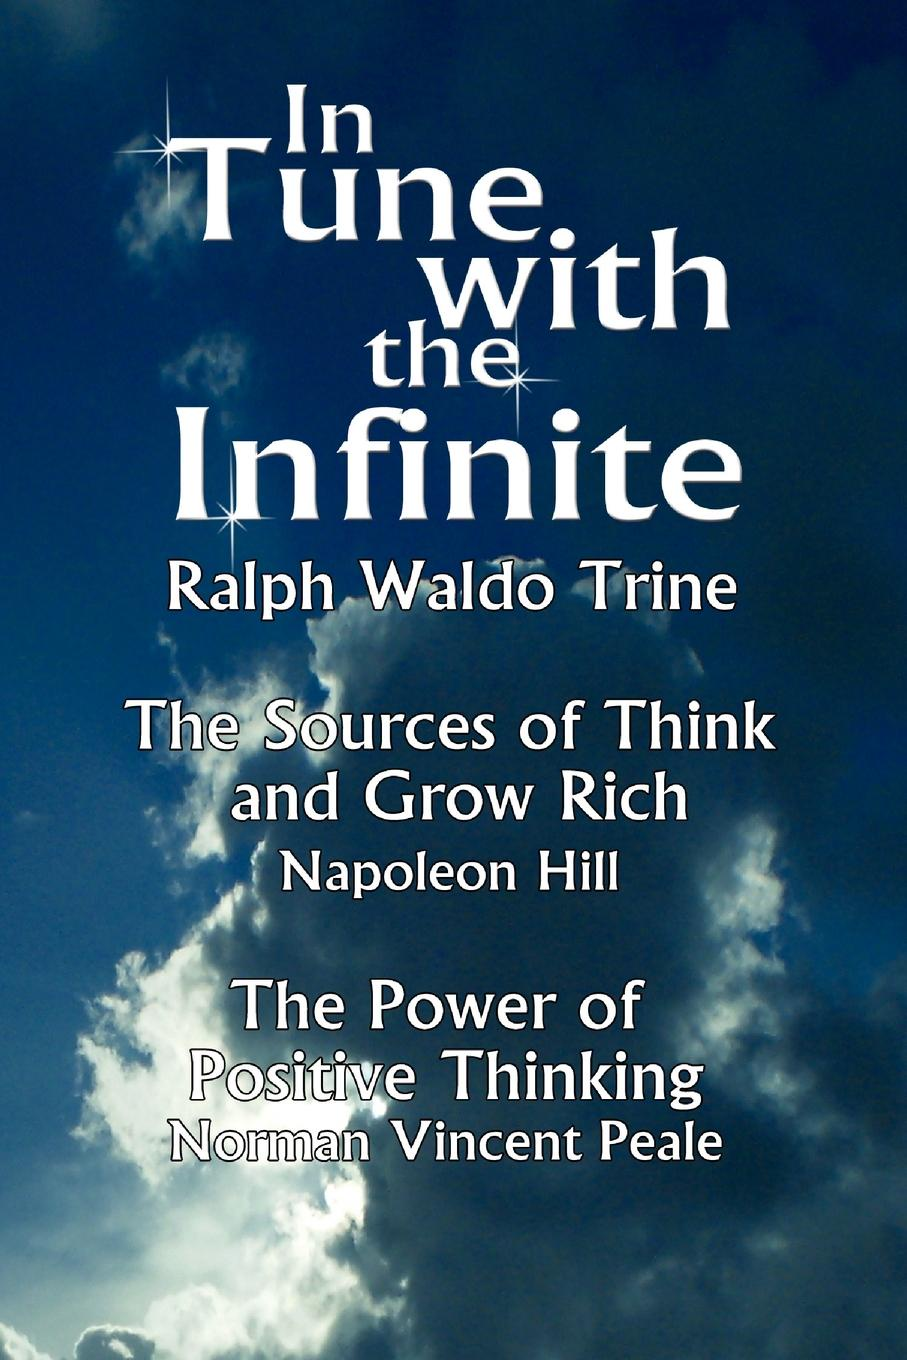 Waldo Trine Ralph Waldo Trine, Ralph Waldo Trine In Tune with the Infinite (the Sources of Think and Grow Rich by Napoleon Hill . the Power of Positive Thinking by Norman Vincent Peale) browne george waldo where duty called or in honor bound